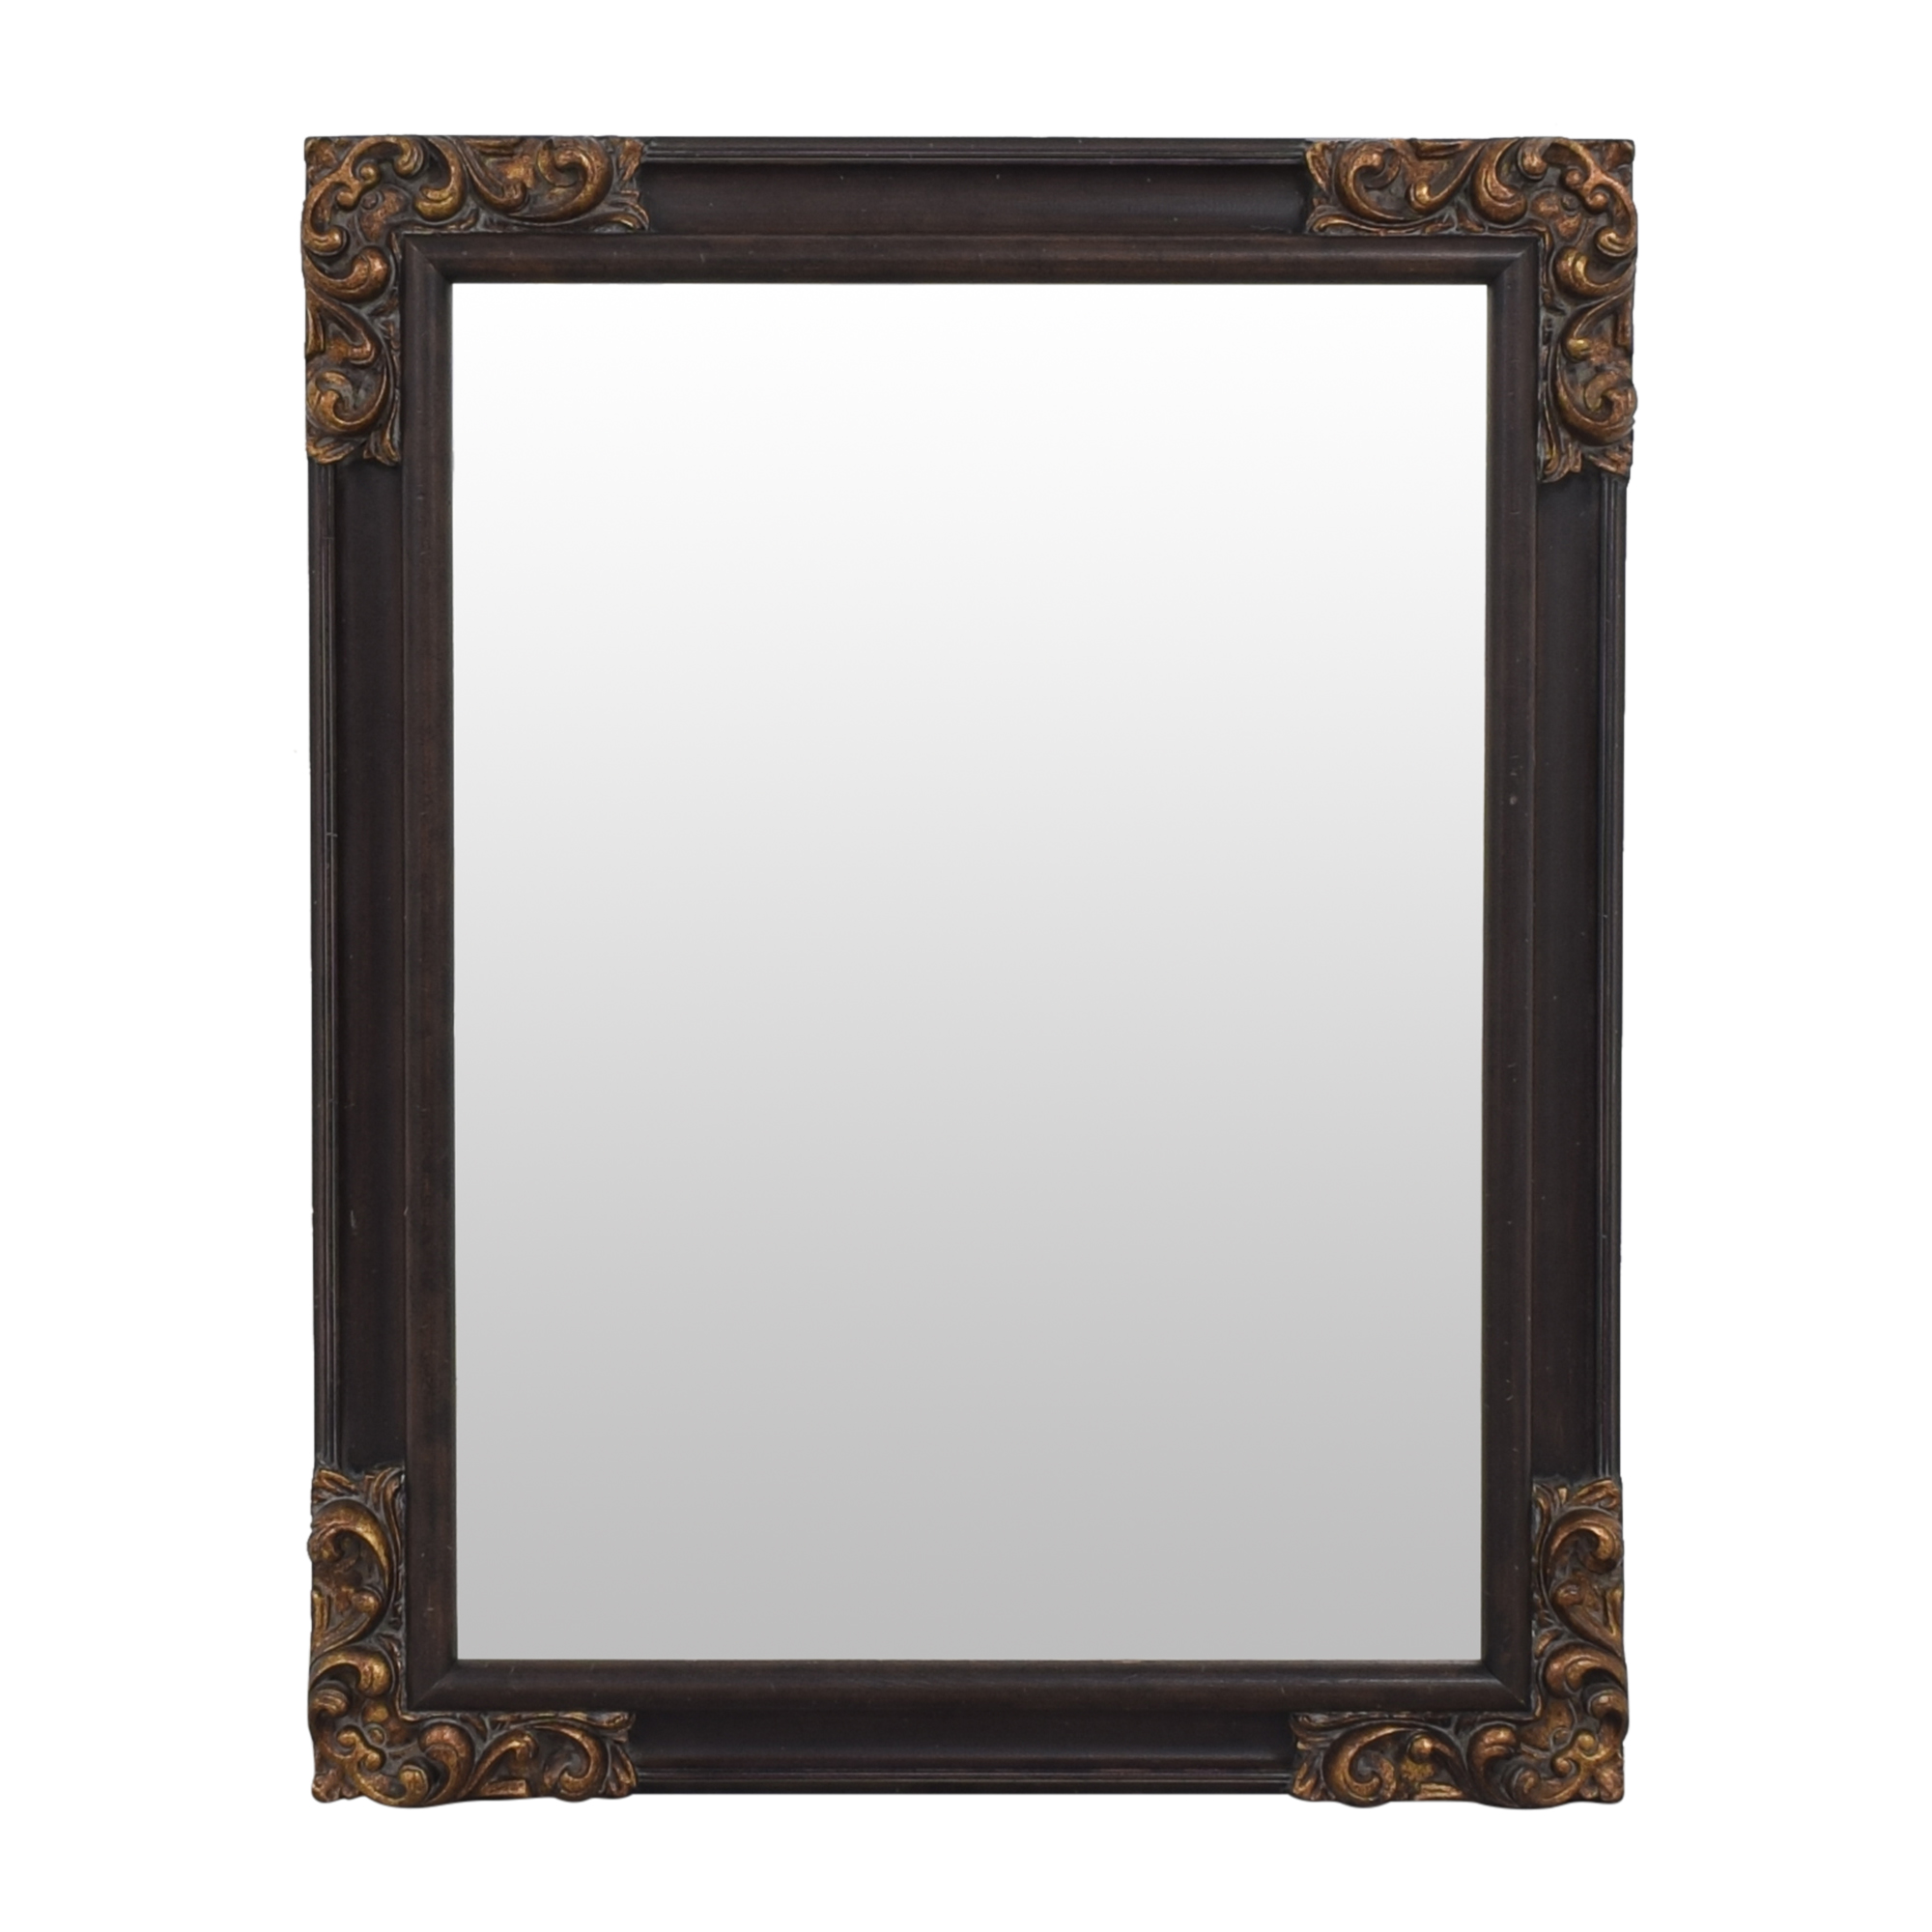 Windsor Art Windsor Art Wall Mirror on sale